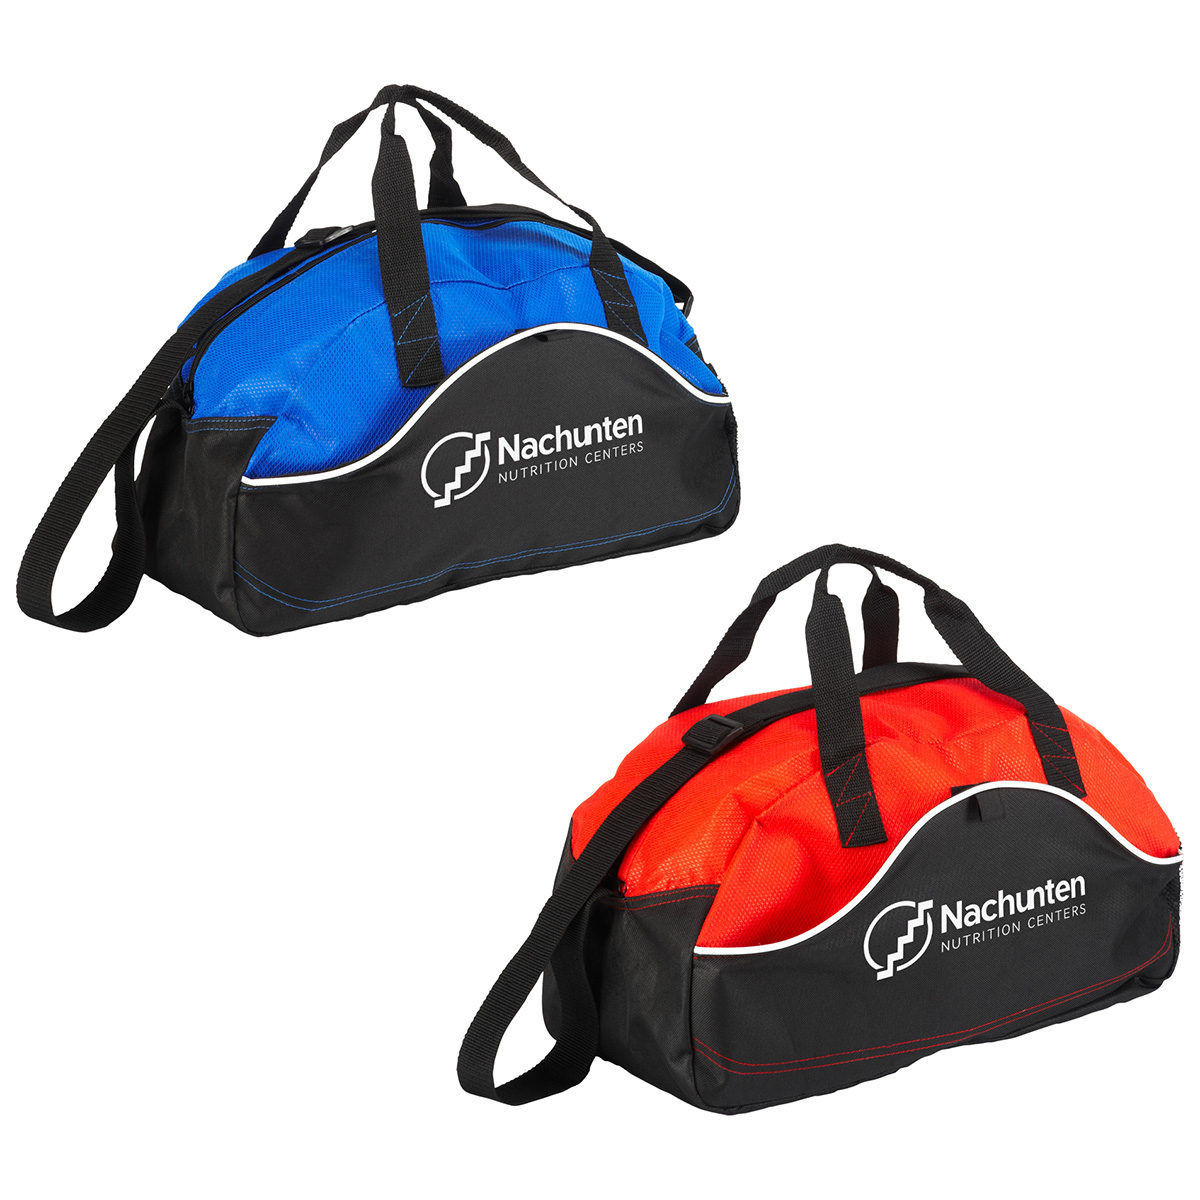 Quick Kick Duffel Bag, WBA-QC10 - 1 Colour Imprint